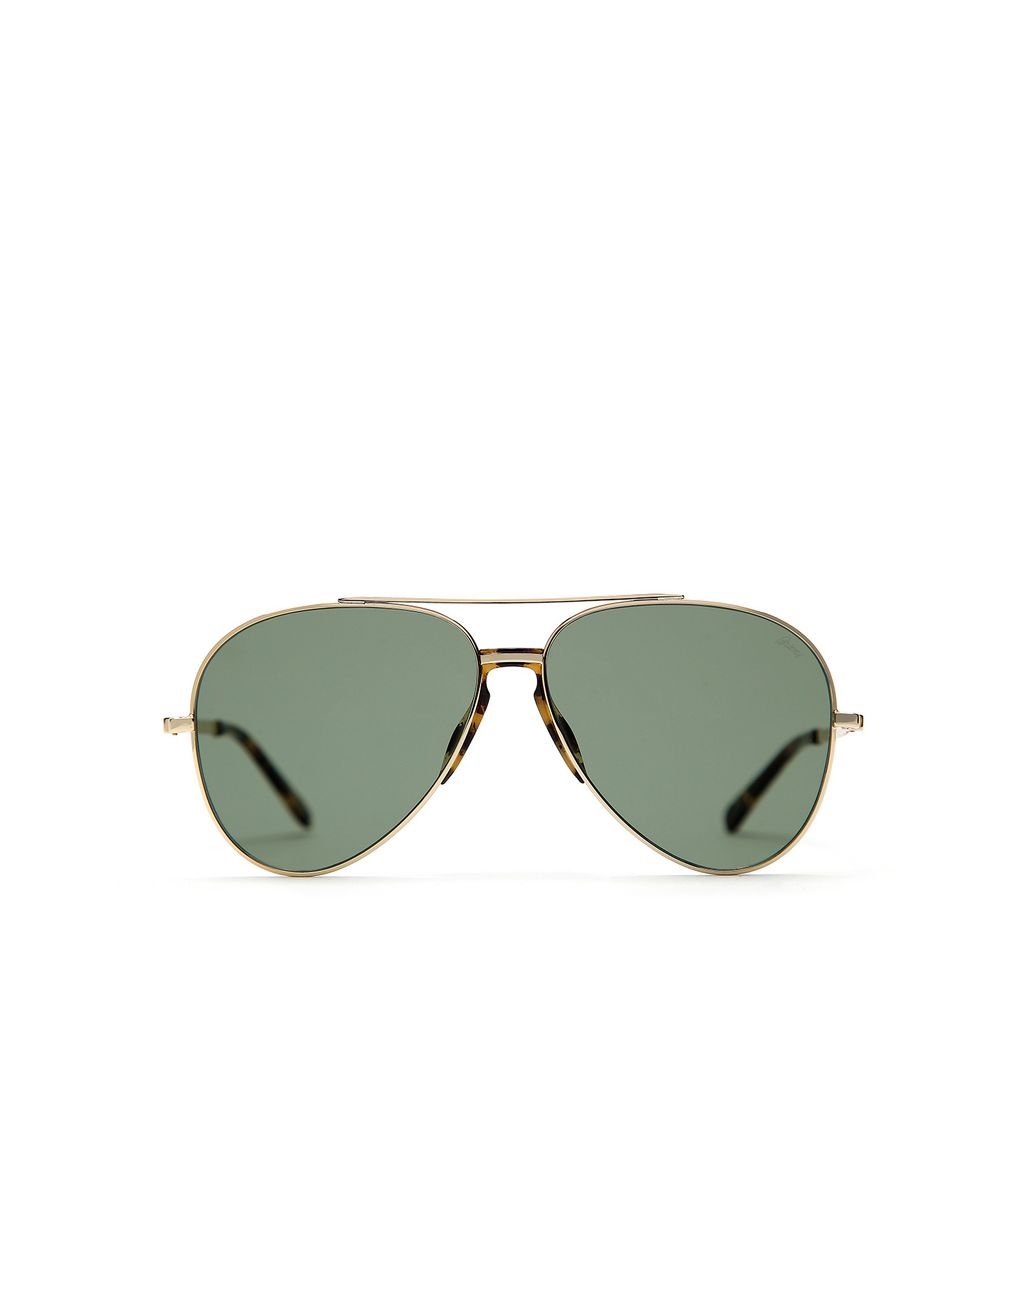 BRIONI Gold and Havana Pilot Sunglasses with Green Lenses Sunglasses Man f